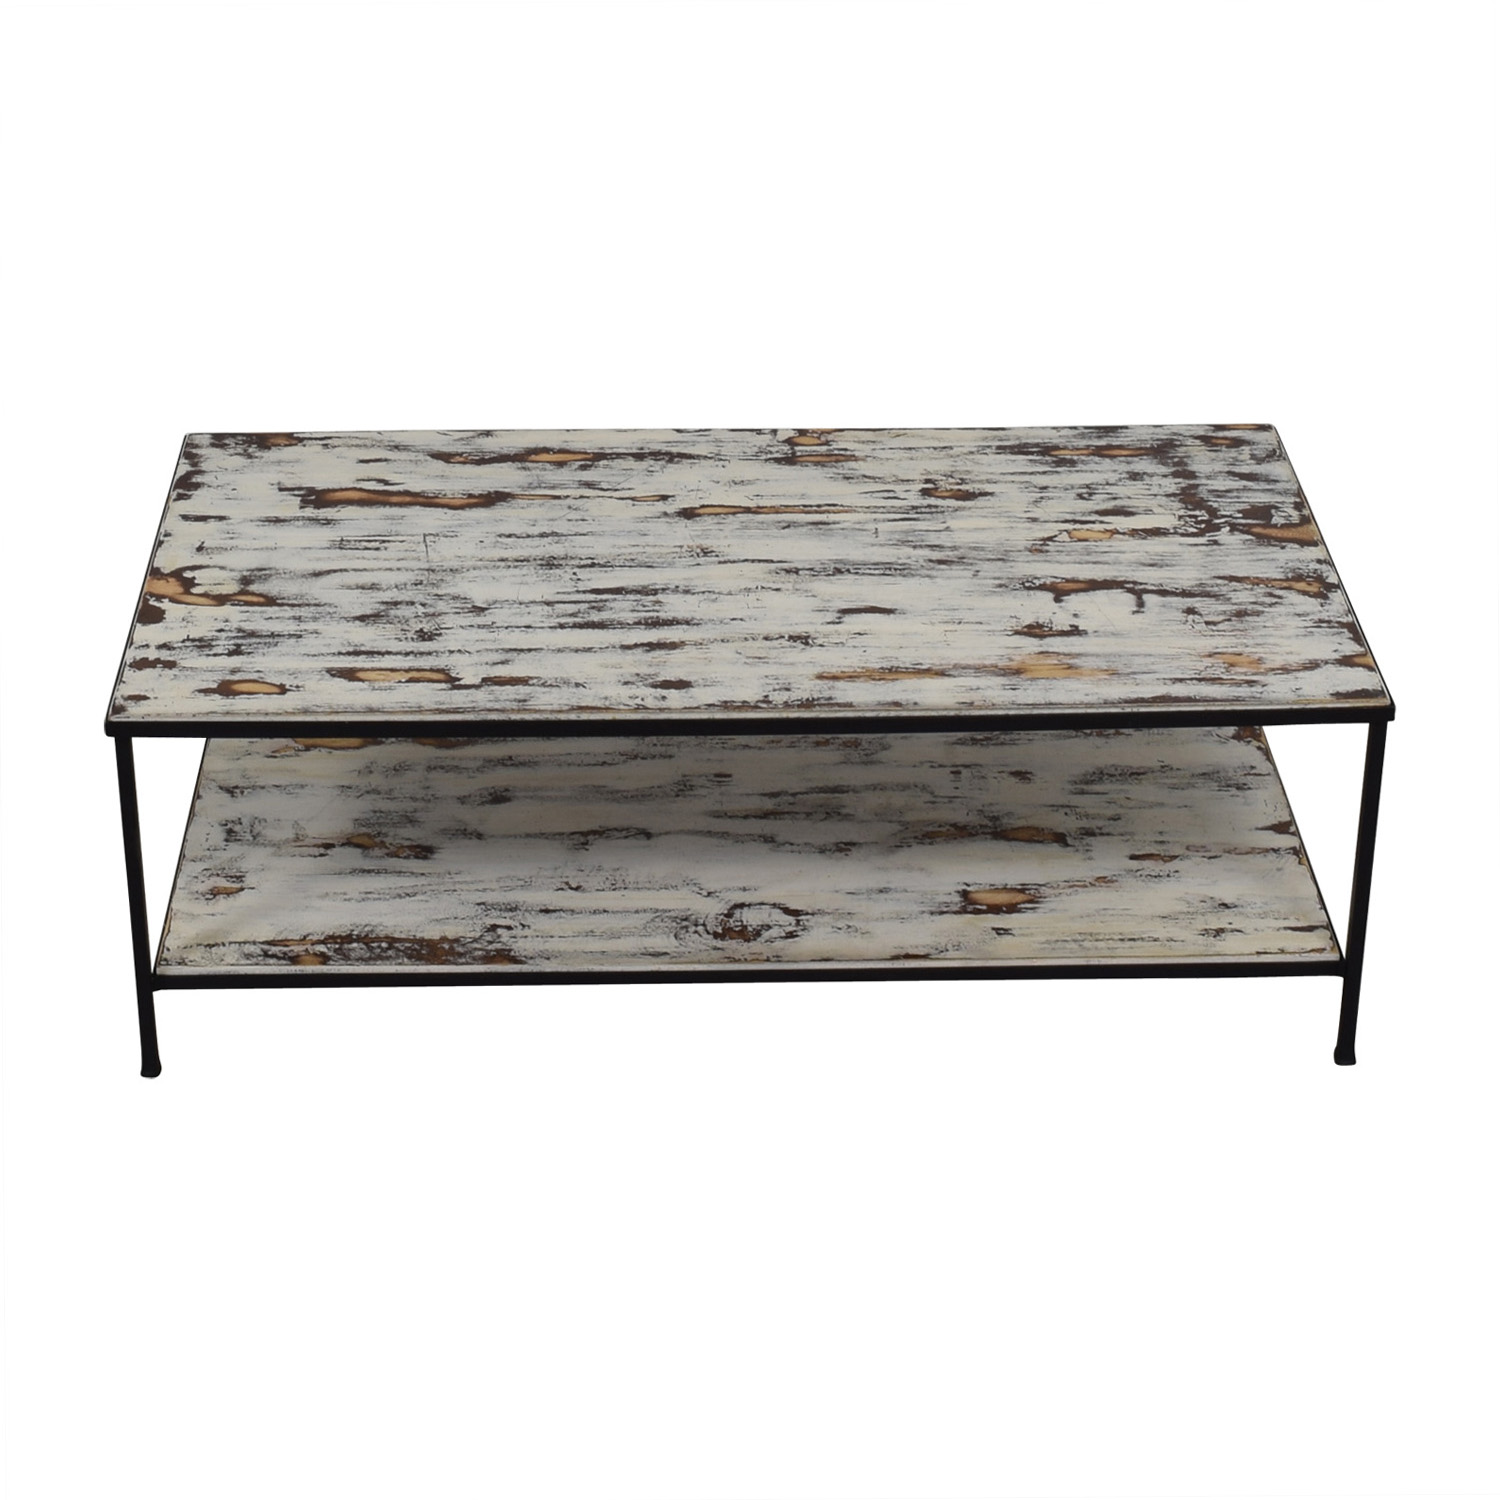 Rustic Distressed Wood Coffee Table second hand